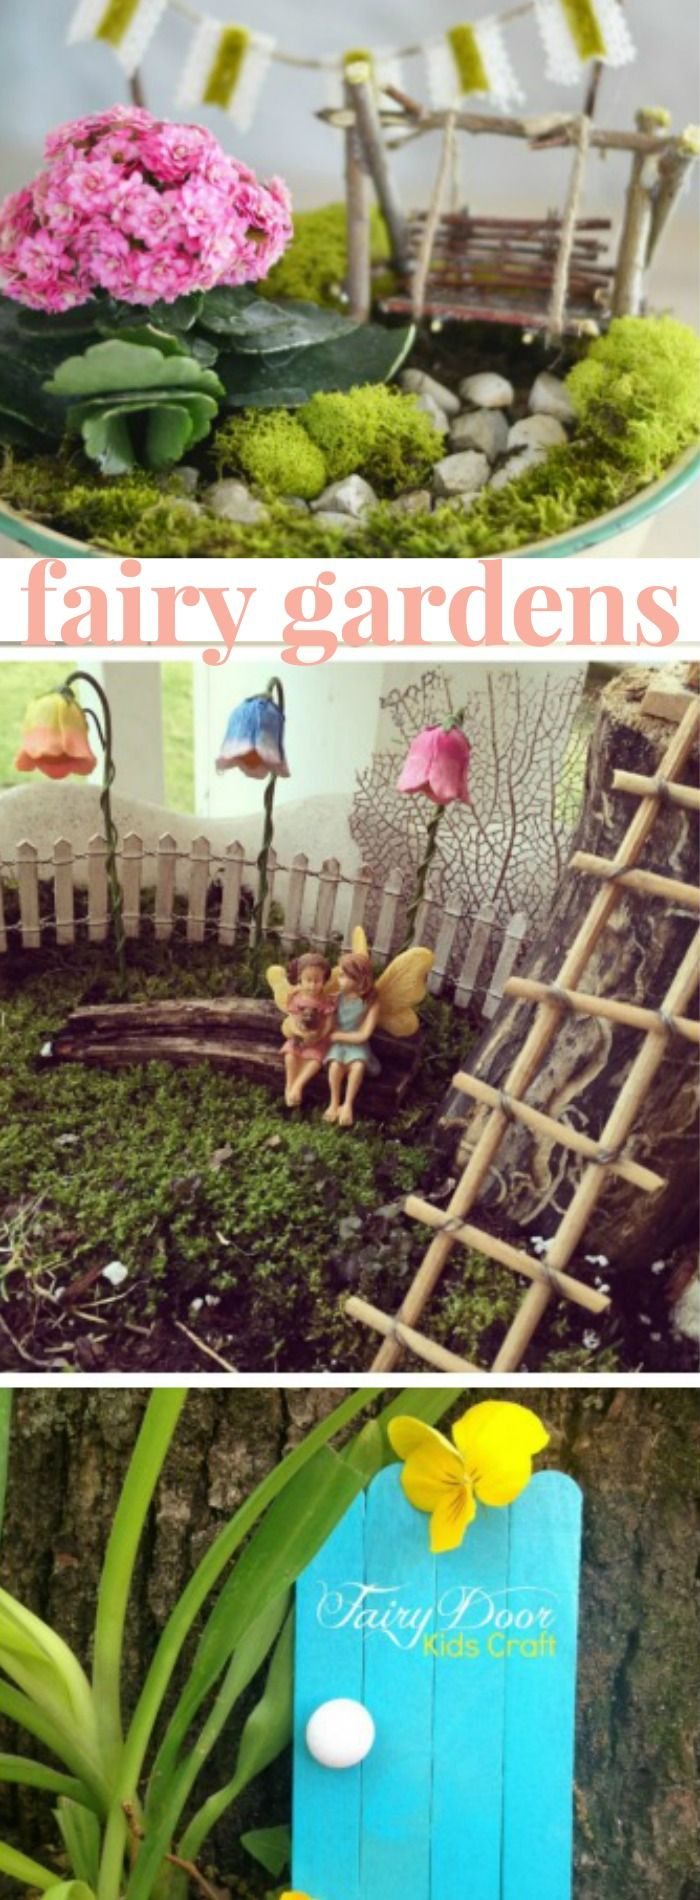 330 Best Fairy Gardens Images On Pinterest | Fairies Garden, Fairy Gardening  And Gnome Garden